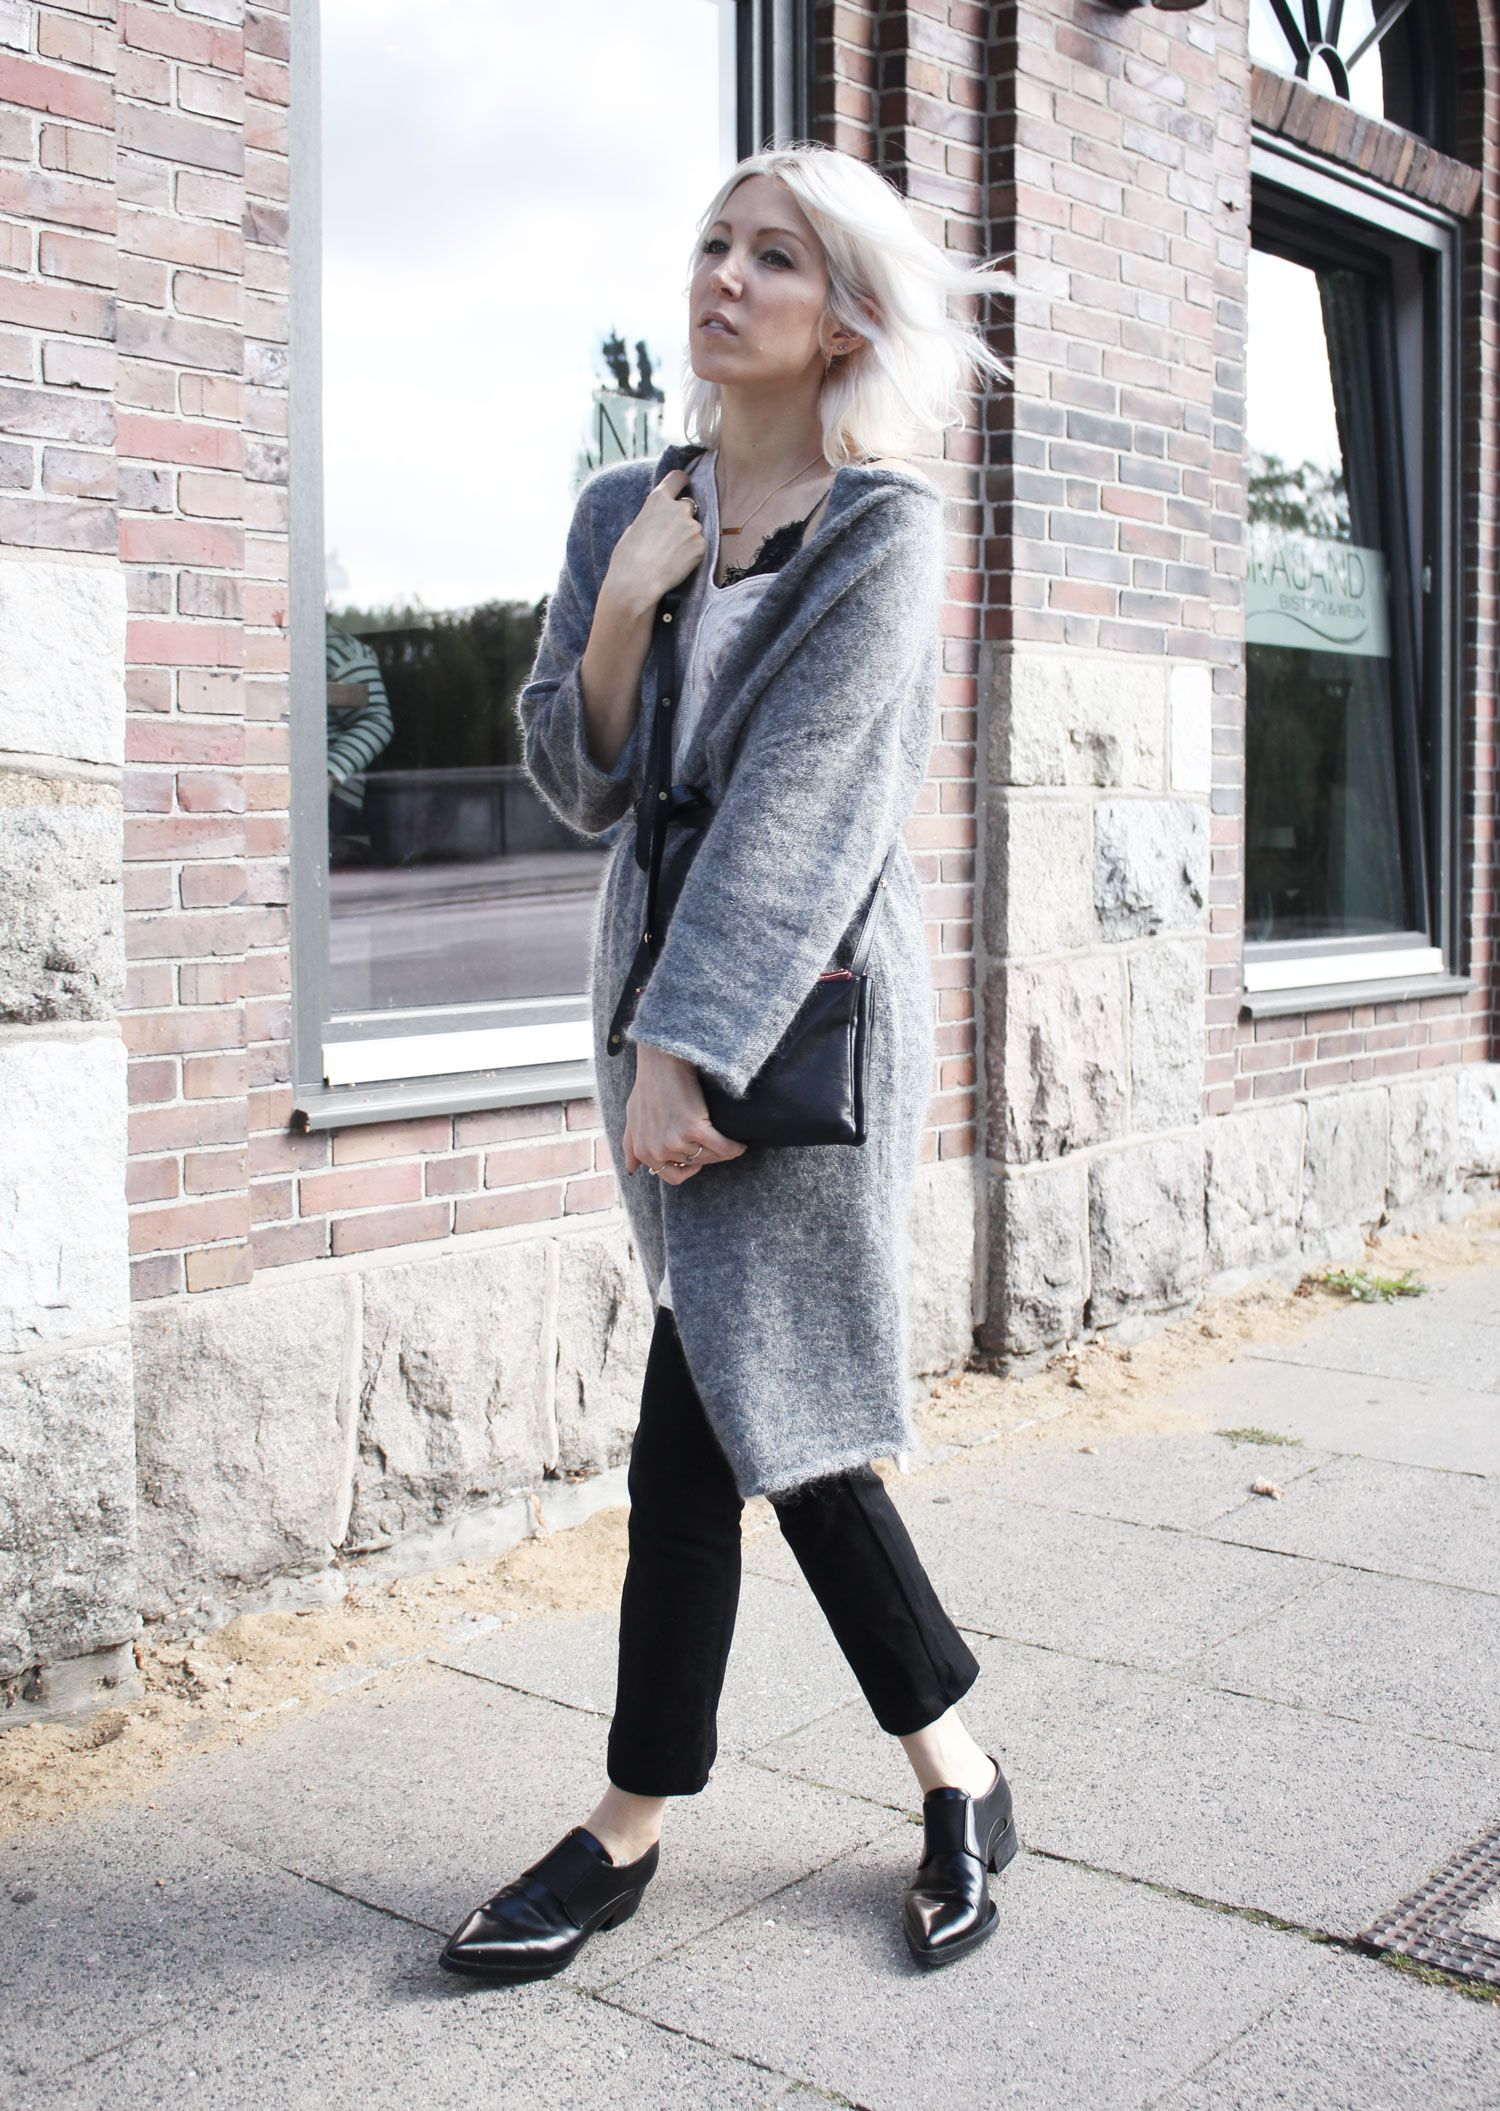 Strickjacke, By Malene Birger, H M, cropped, Stella McCartney, Rika, ootd,  Outfit, lotd, Look, style, Streetstyle, Fall, Autumn, Fashion, Blog,  stryleTZ 1bbf0c2bd1